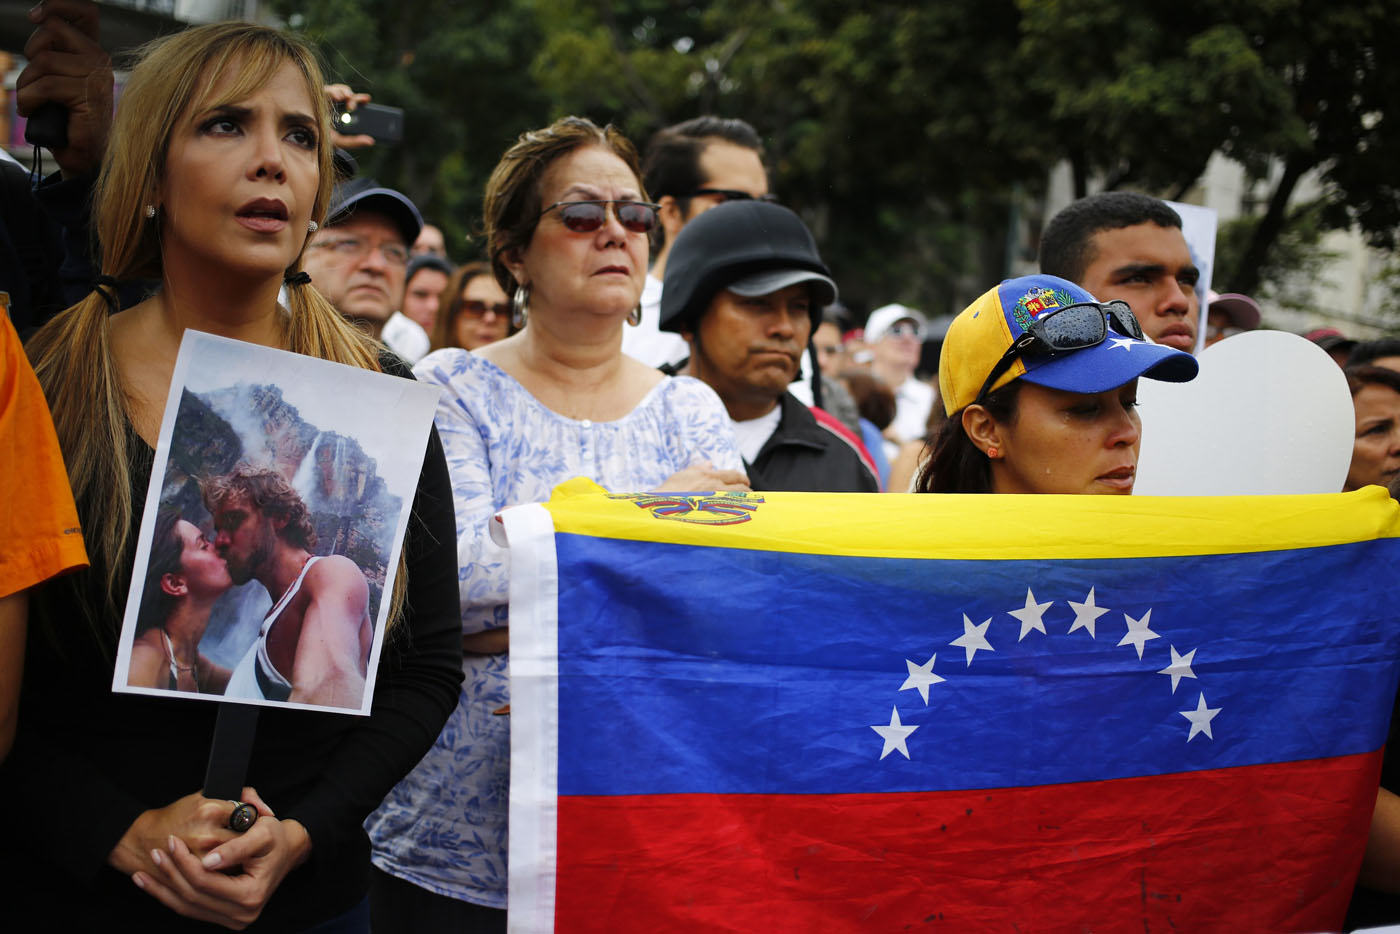 Supporters of former Miss Venezuela Monica Spear take part in a demonstration against violence in Caracas